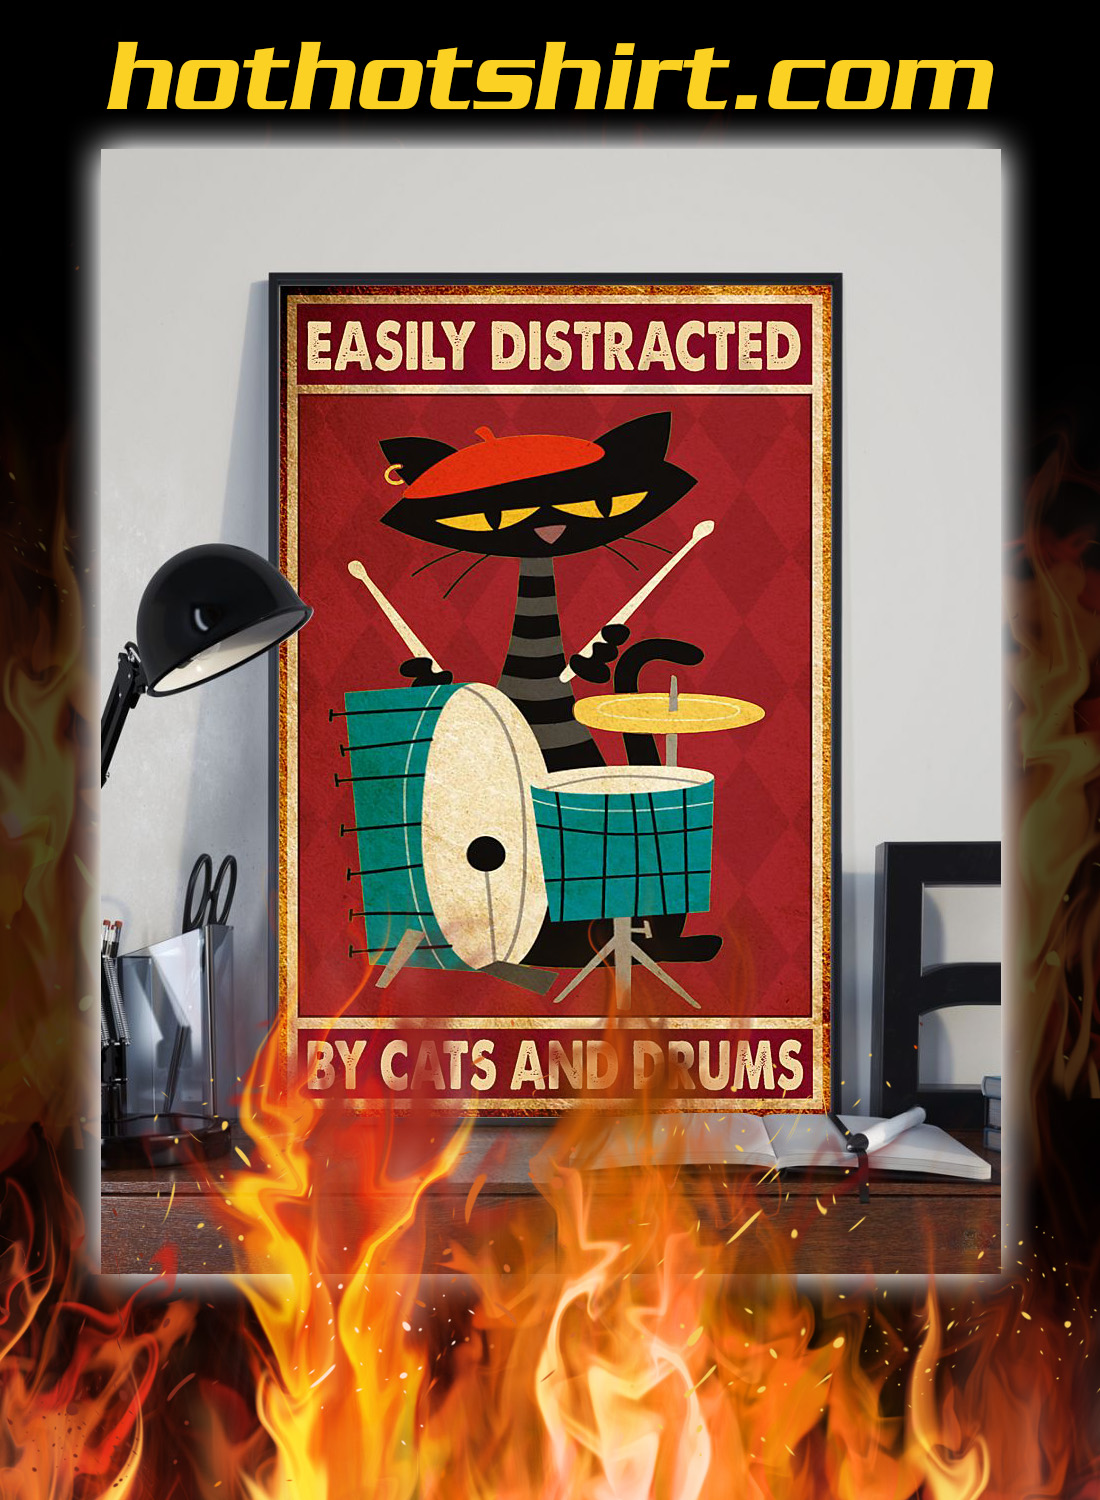 Easily distracted by cats and drums poster 1